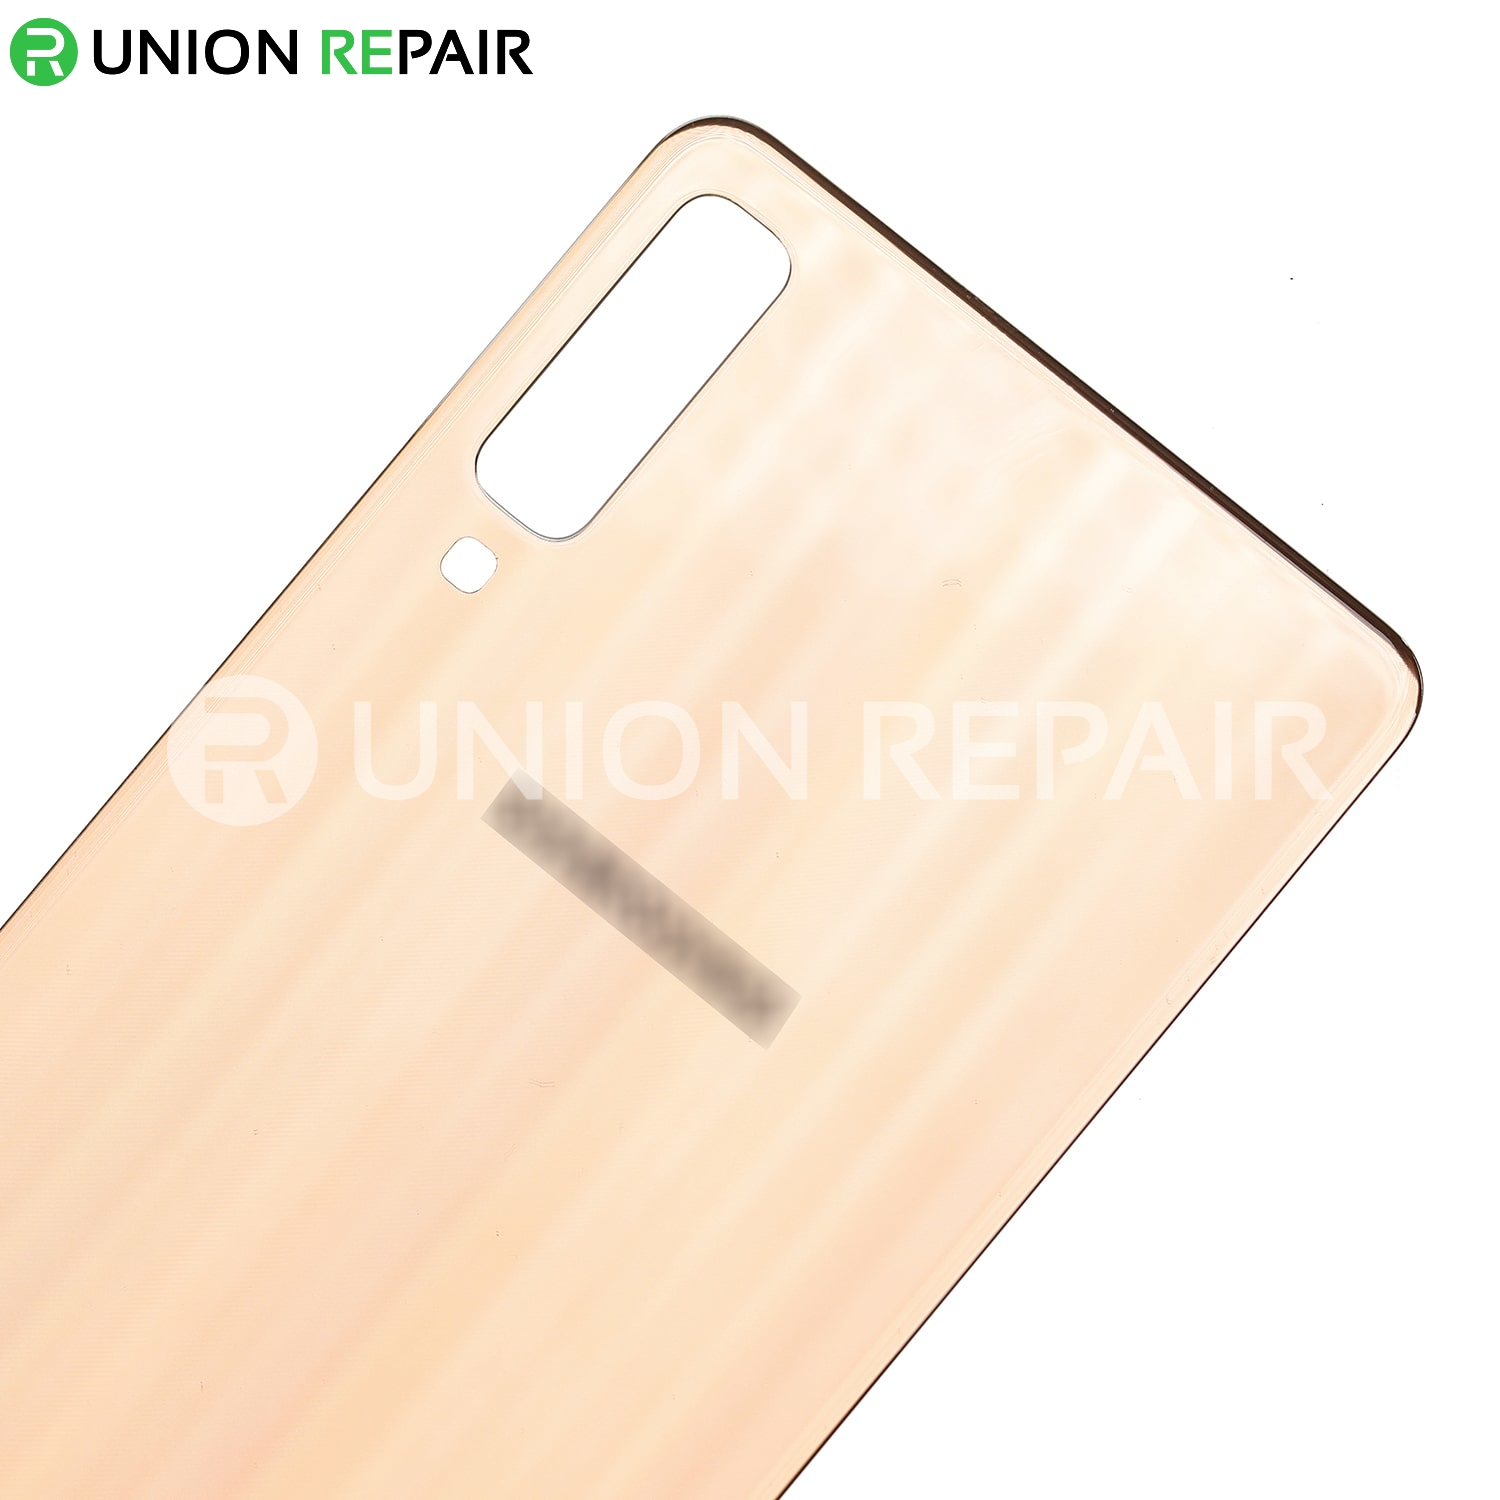 Replacement for Samsung Galaxy A7 (2018) SM-A750 Battery Door - Gold